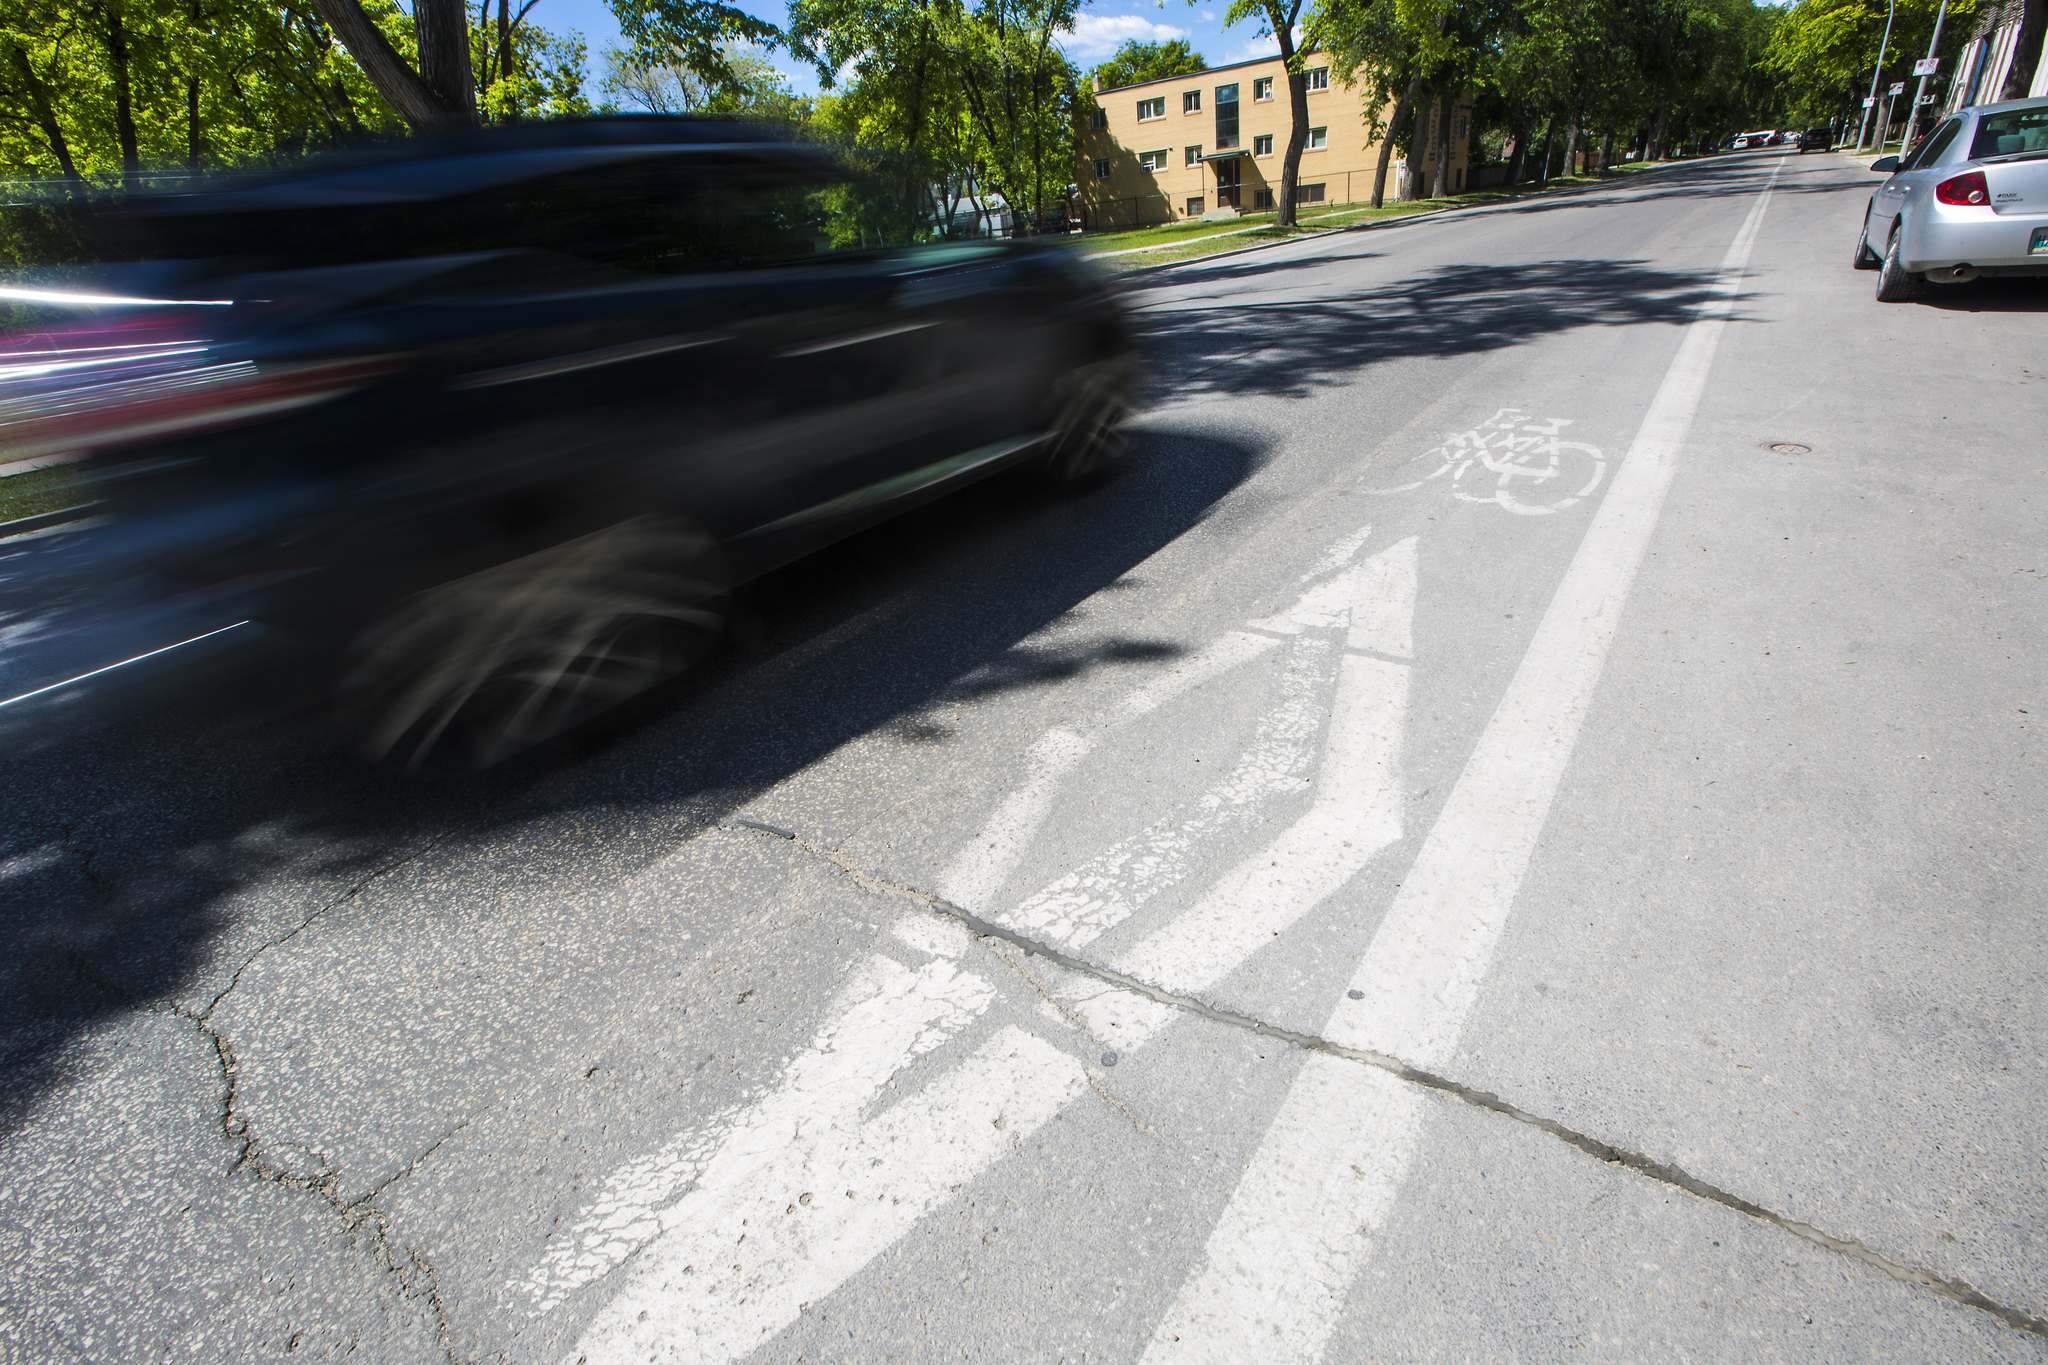 MIKAELA MACKENZIE / WINNIPEG FREE PRESS FILES </p> Instead of focusing on ticketing cyclists using sidewalks, Winnipeg might be better served by prioritizing safe and accessible biking infrastructure.